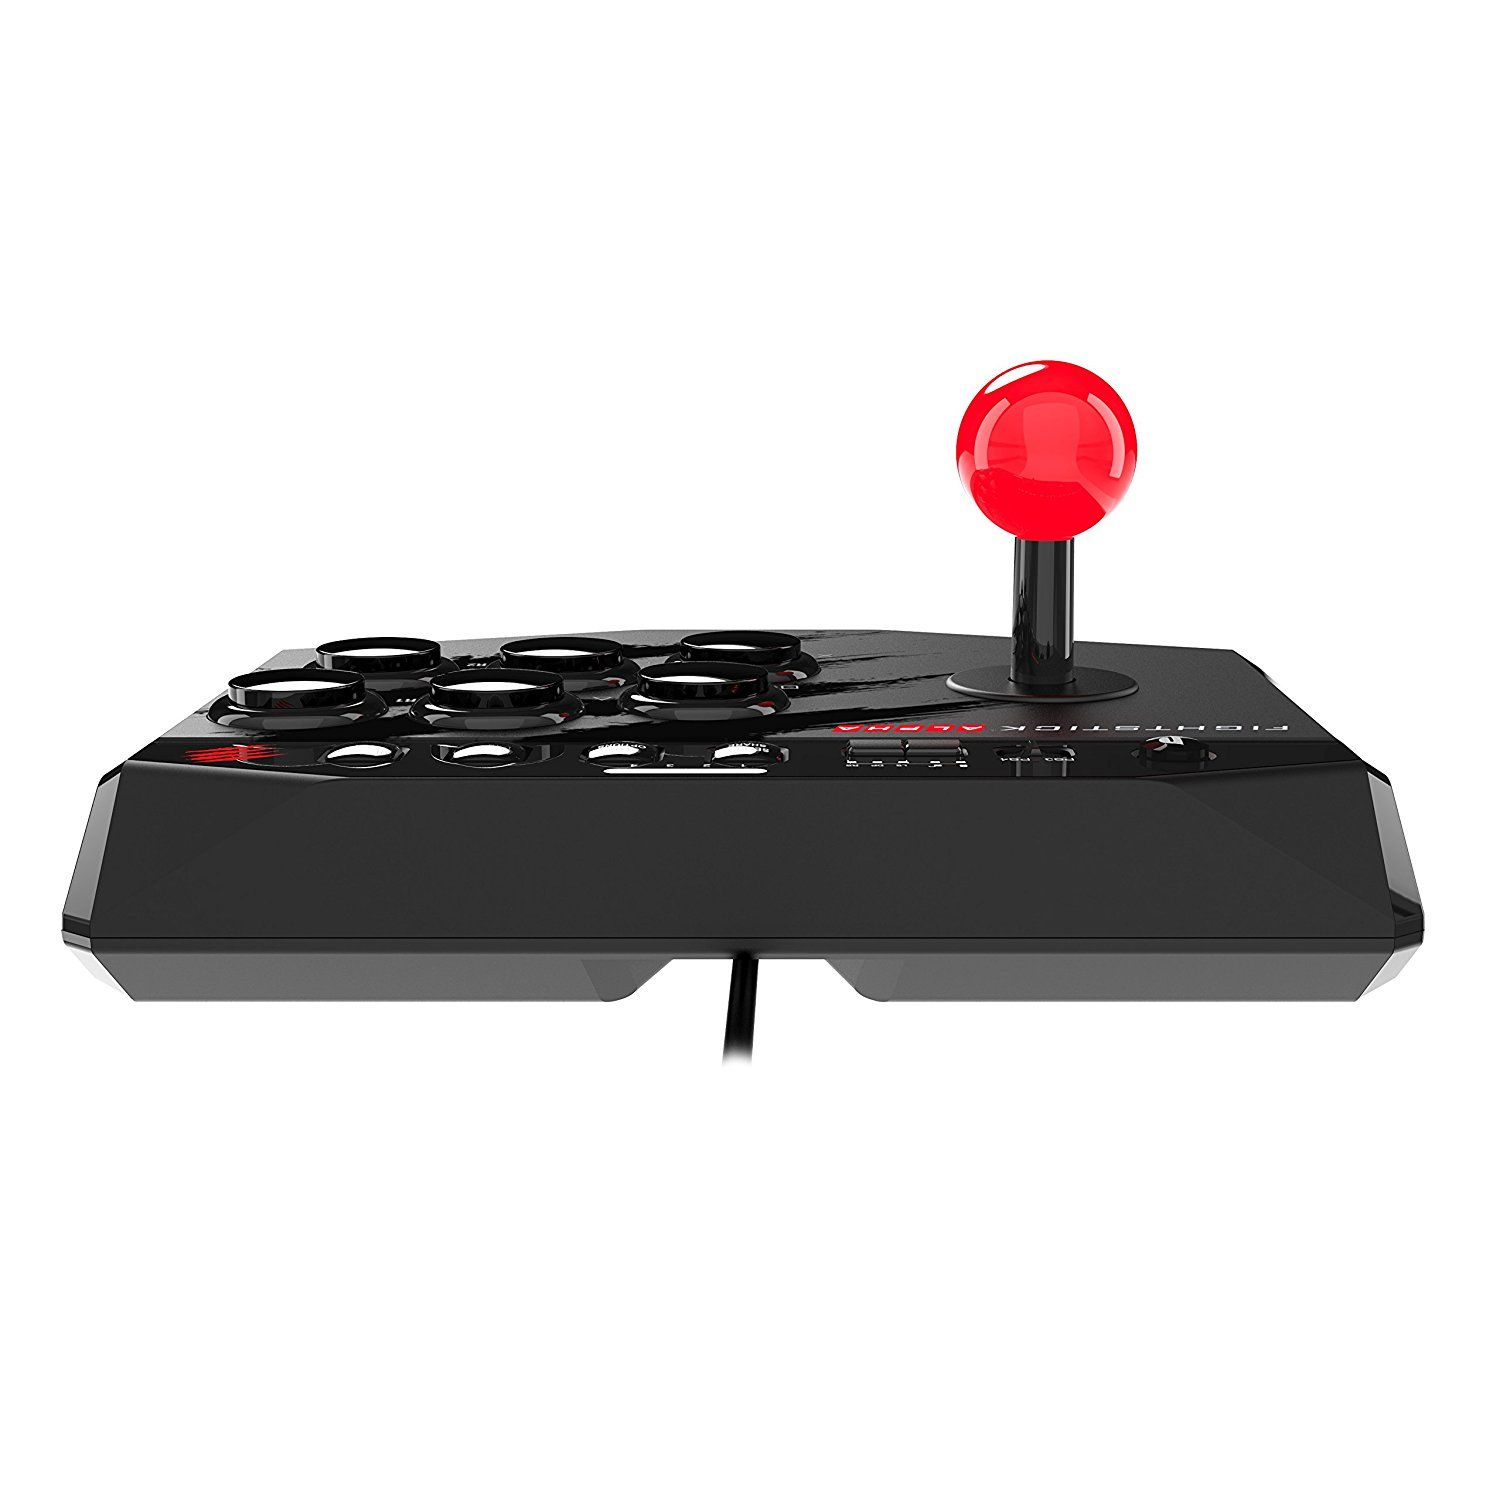 Аркейд стик Alpha Mad Catz, FightStick (PS4/PS3) - 3